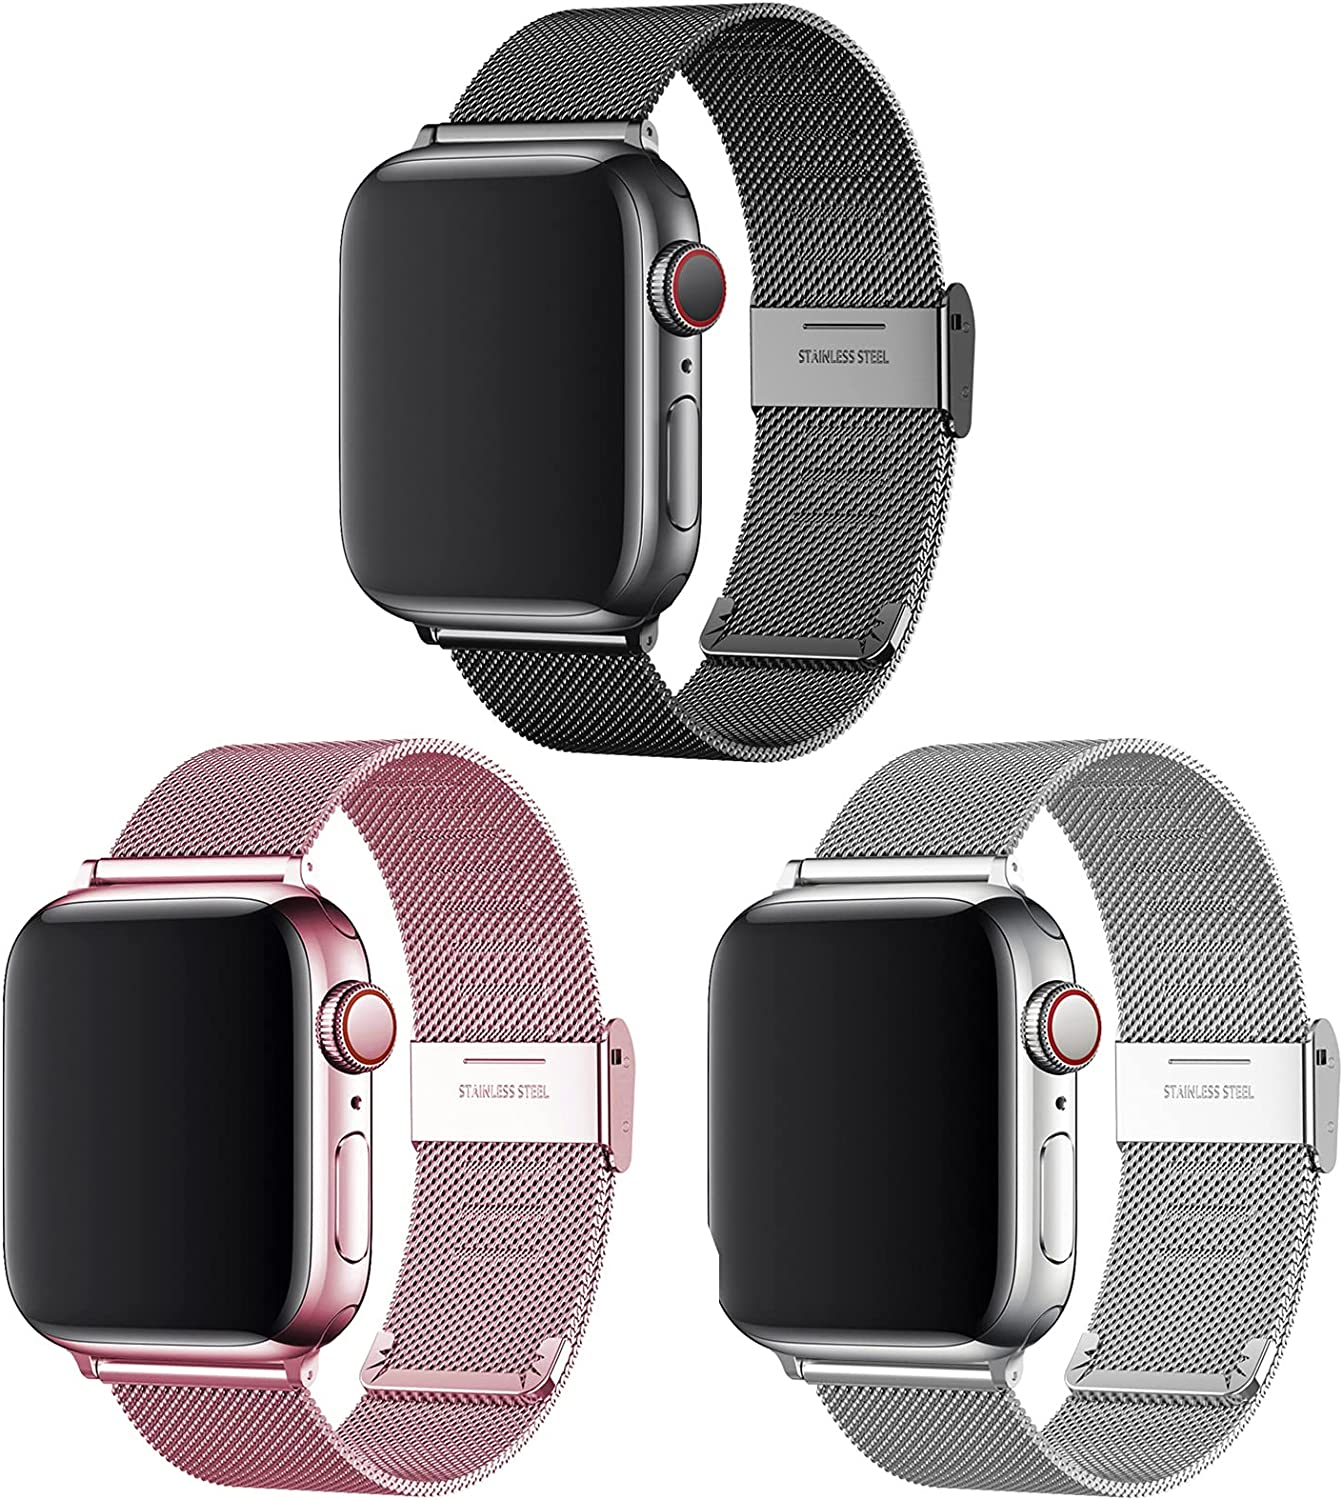 Magnetic iWatch Bands Compatible with Apple Watch 38mm 40mm 42mm 44mm, Adjustable Stainless Steel Mesh Metal Loop Sport Wristband for women and men Compatible with iWatch Series 6/5/4/3/2/1